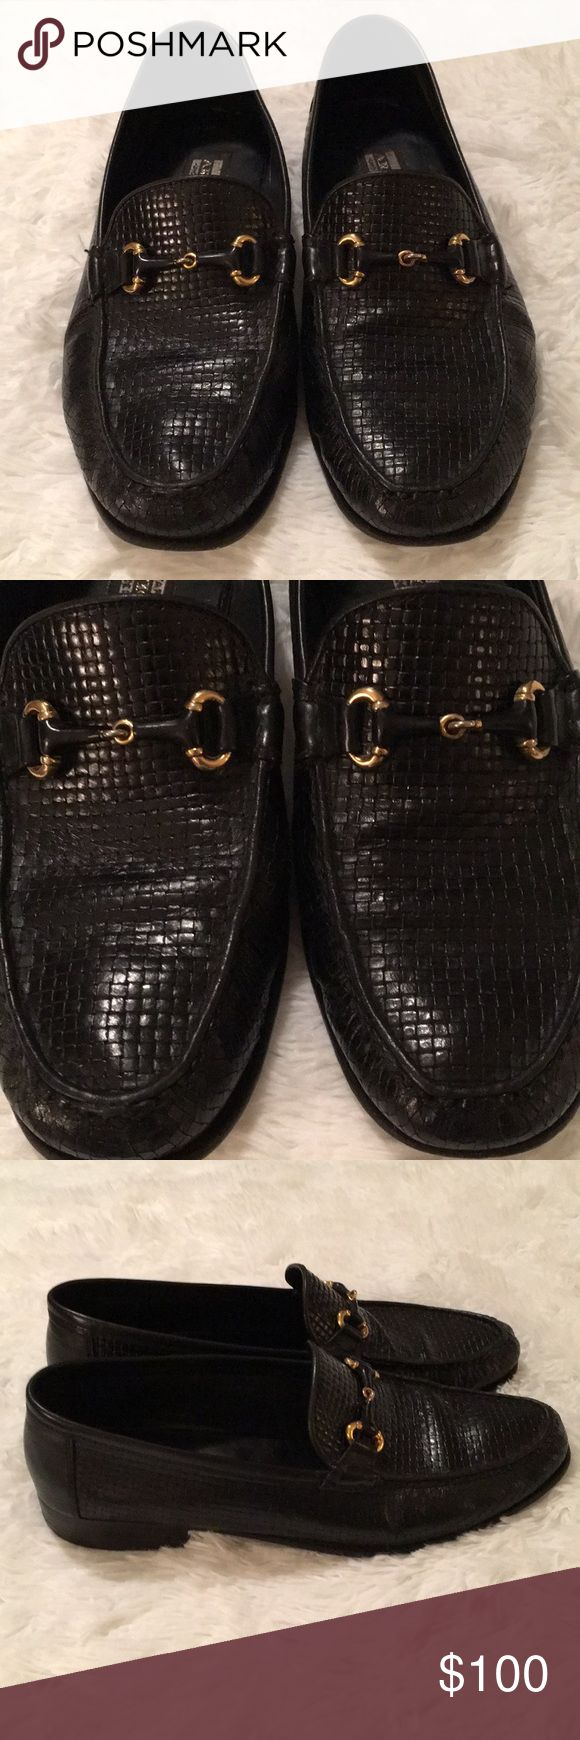 Artioli Men's Slip -On Black Shoes Pair of 8 1/2 D Men's Black-Slip-Ons by Artioli.  These are hand made in Italy.  In good pre-owned condition.  It's a soft Perforated Black Leather with Gold look bit at the vamp. Artioli Shoes Loafers & Slip-Ons